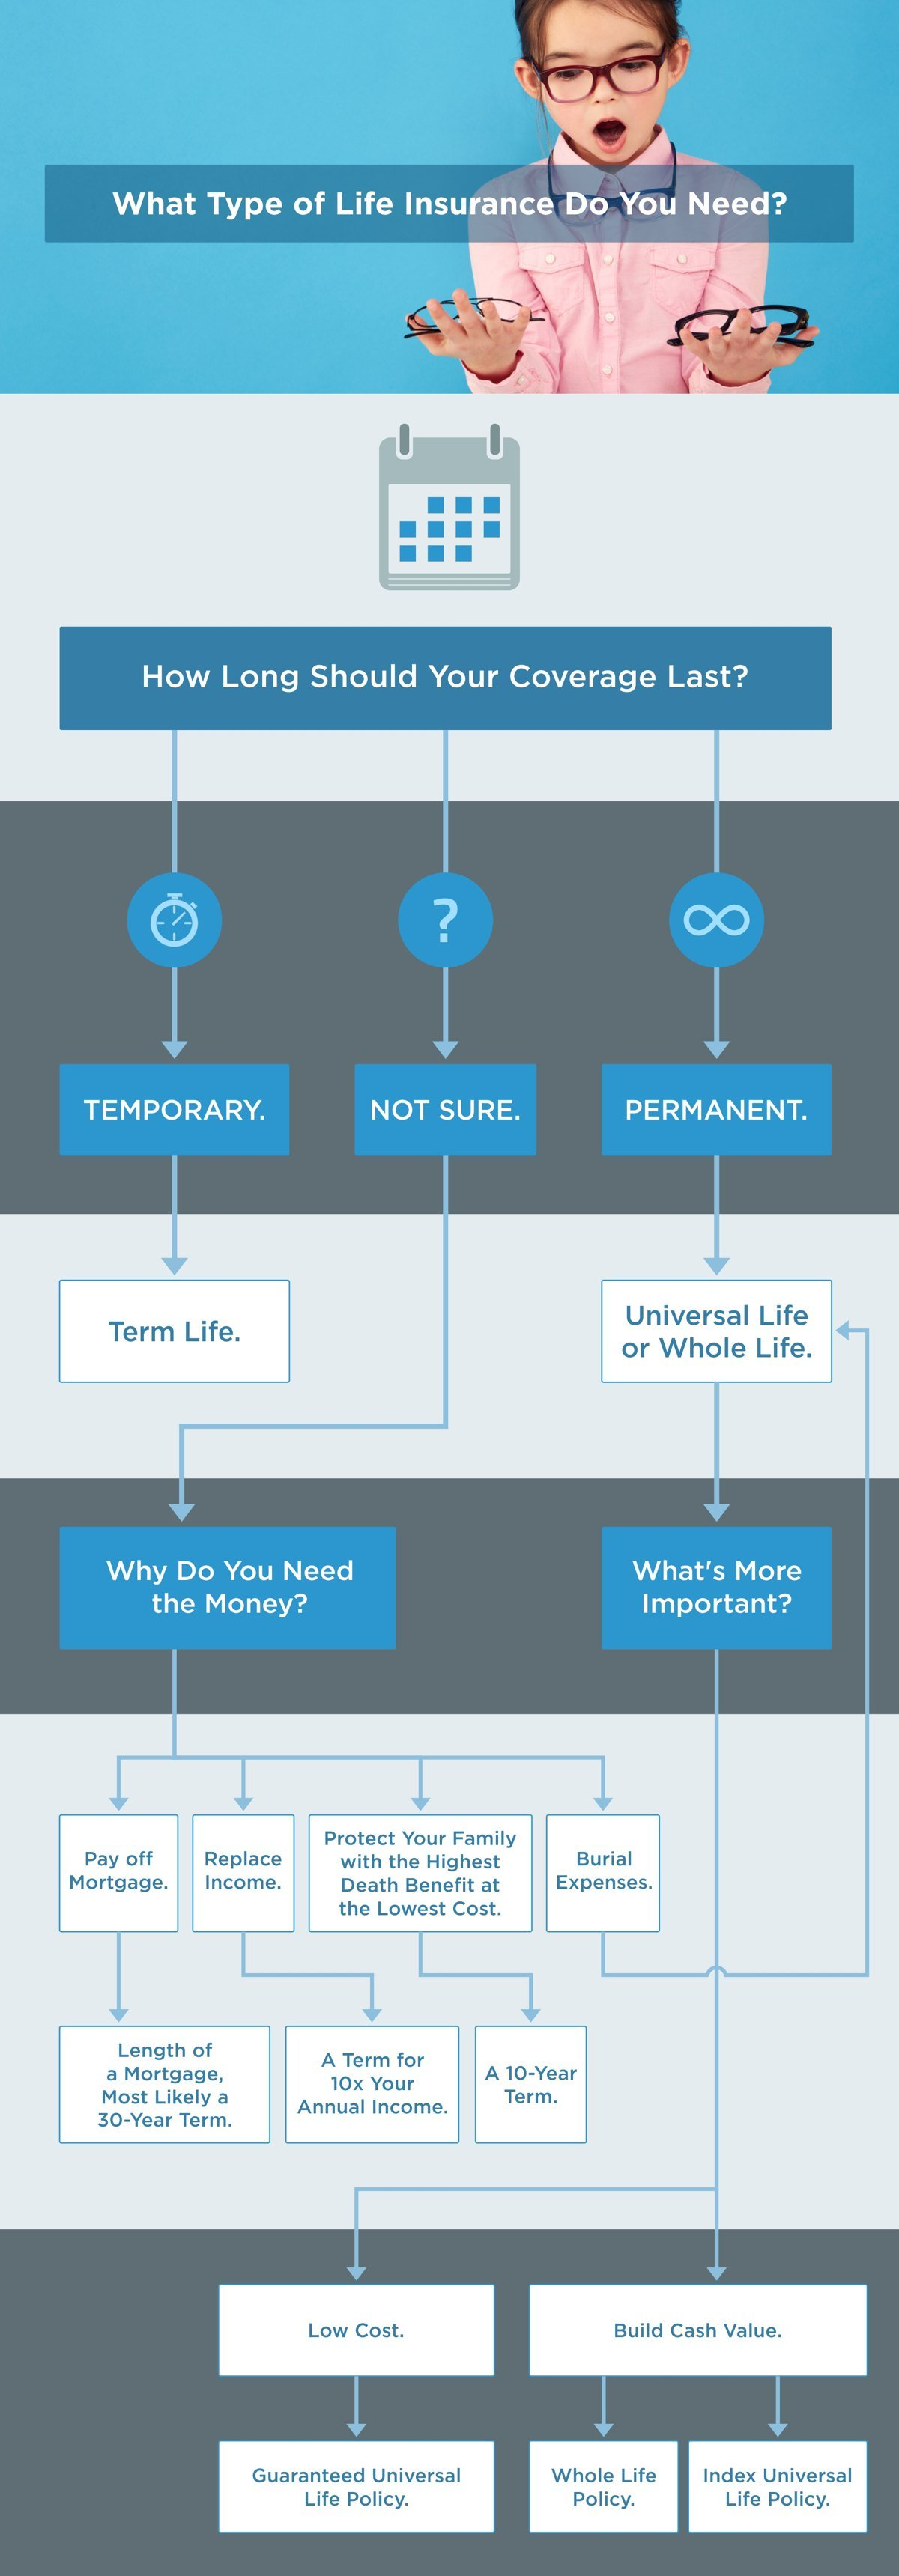 types of life insurance flow chart